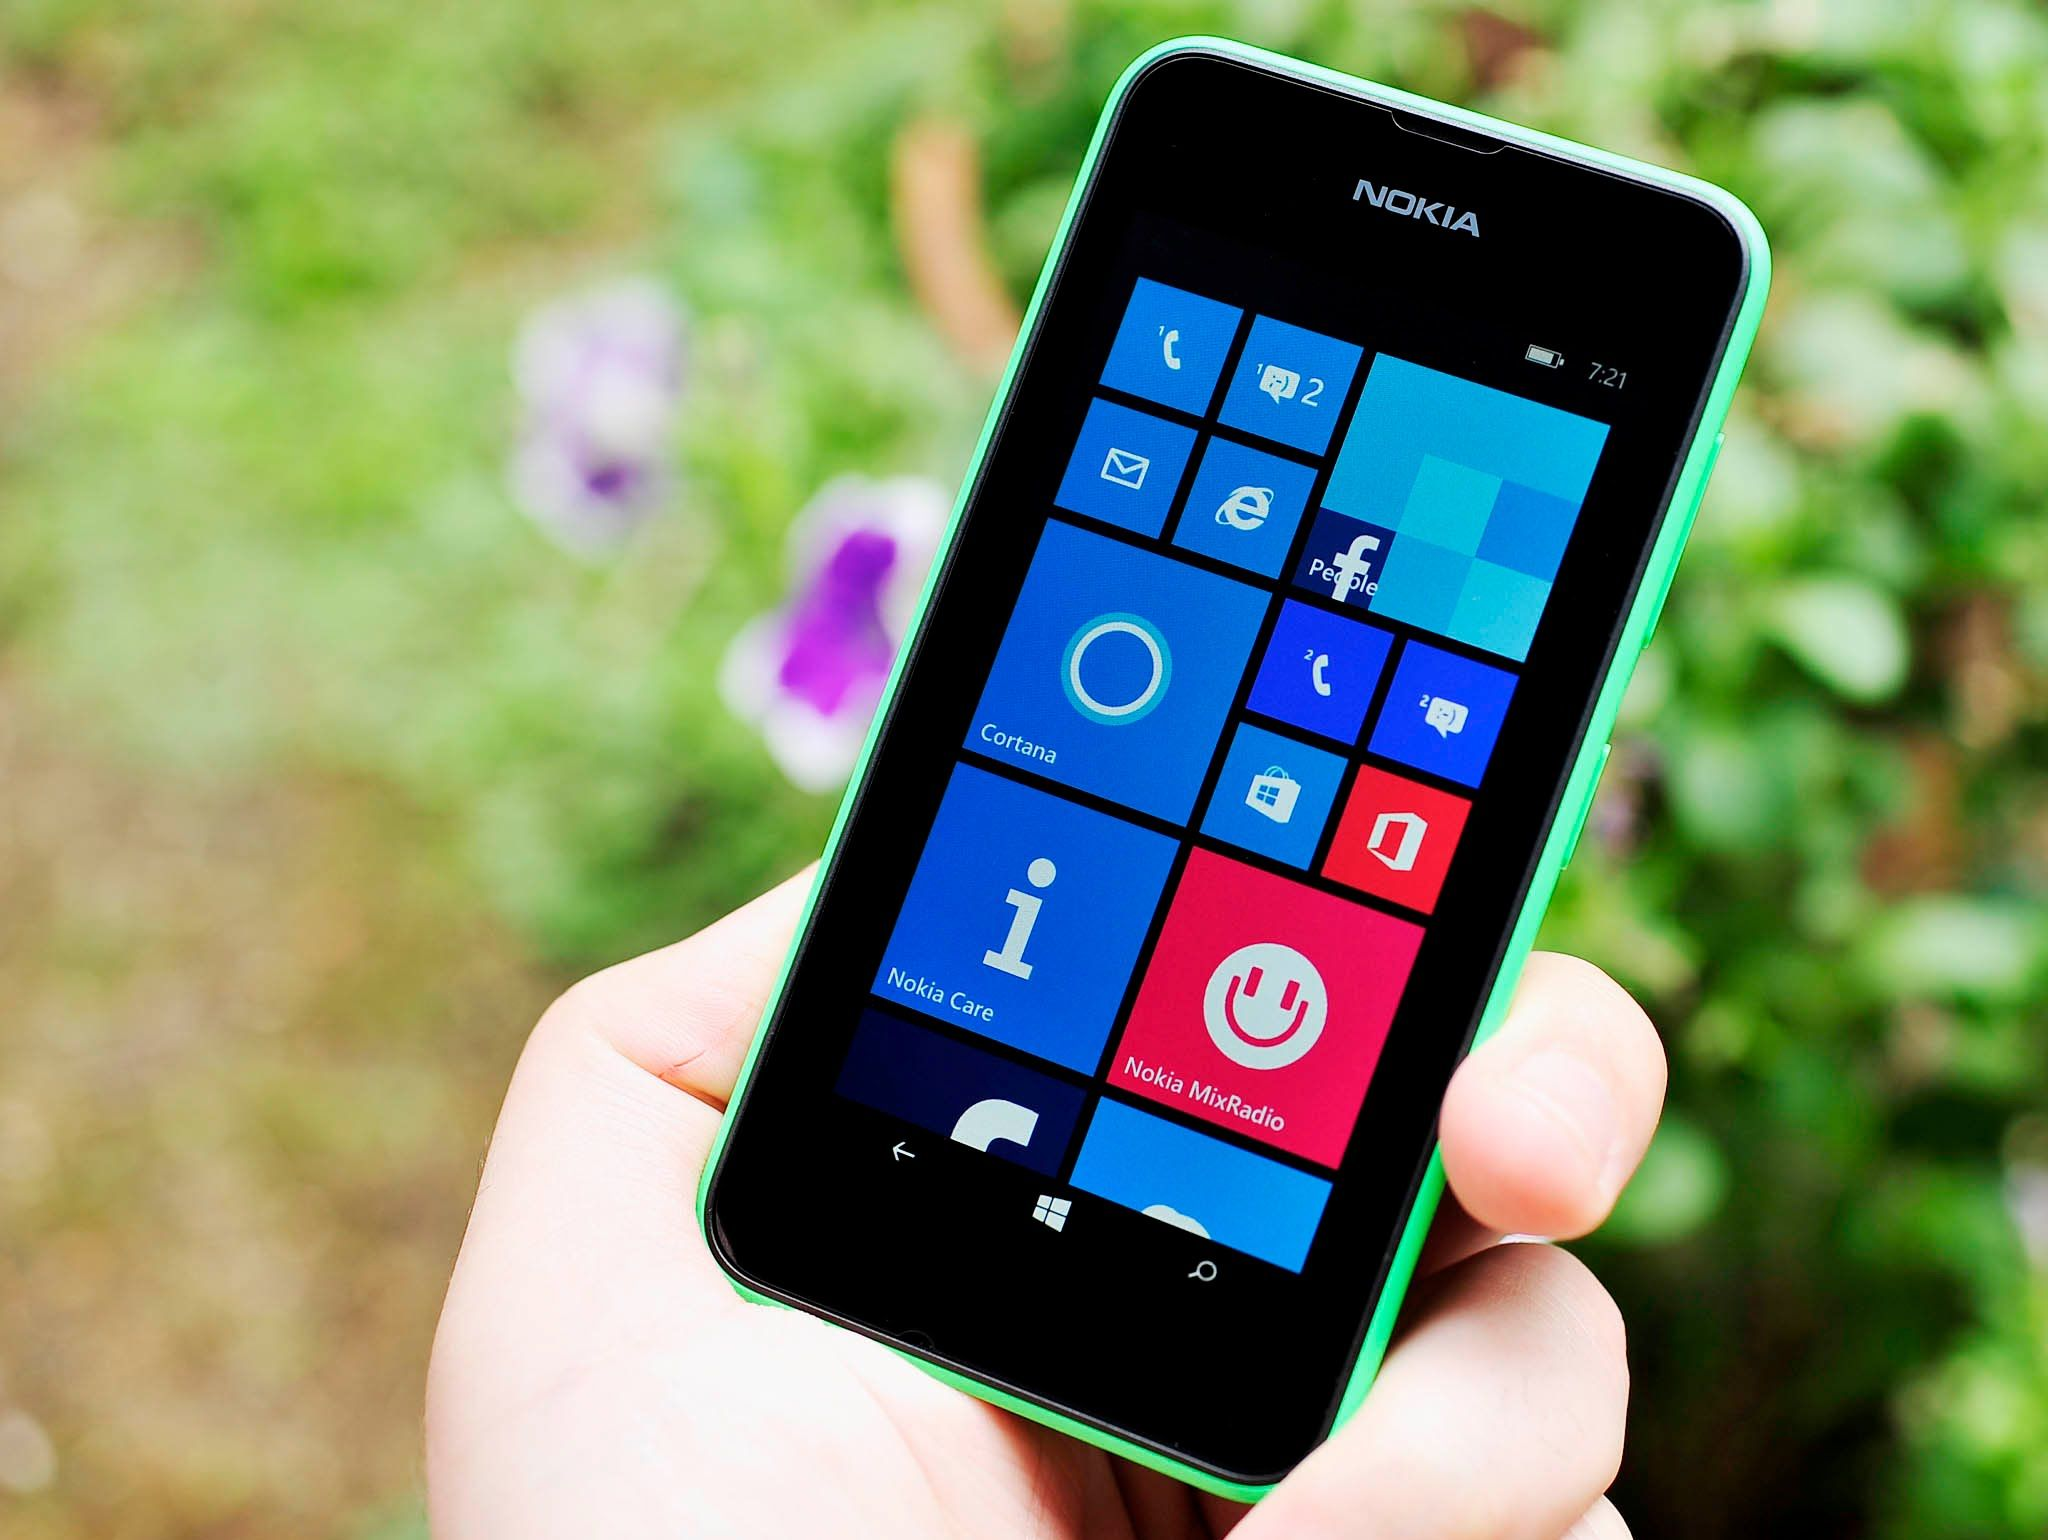 Nokia Lumia 530 Unboxing And Hands On Impressions Microsoft Xl Cyan